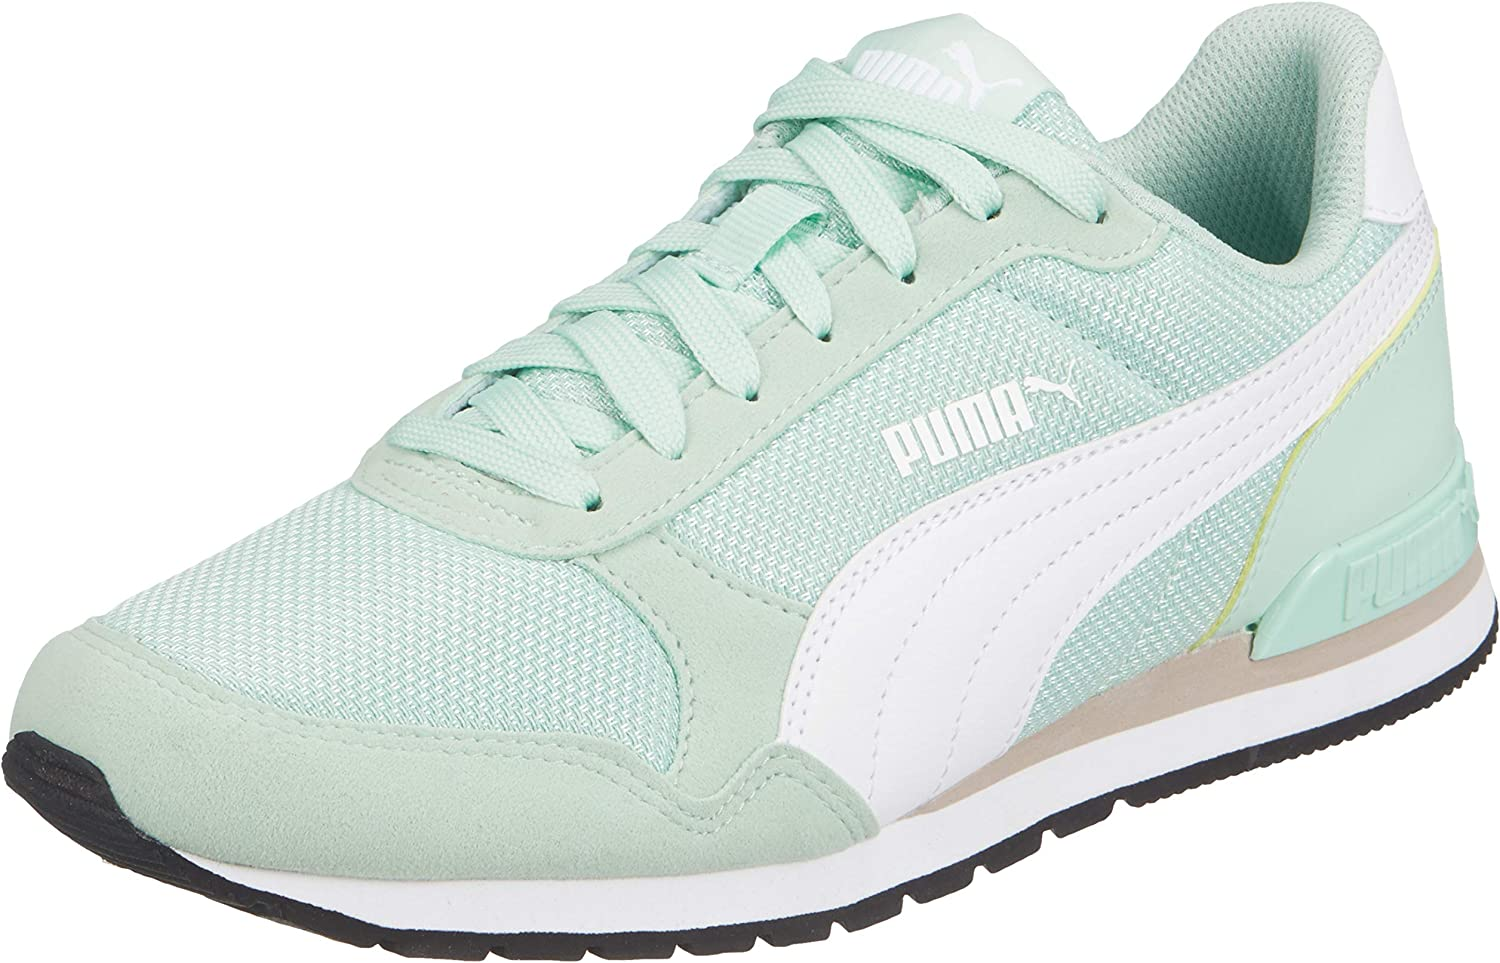 PUMA ST Runner V2 Mesh, Zapatillas Unisex Adulto: Amazon.es: Zapatos y complementos